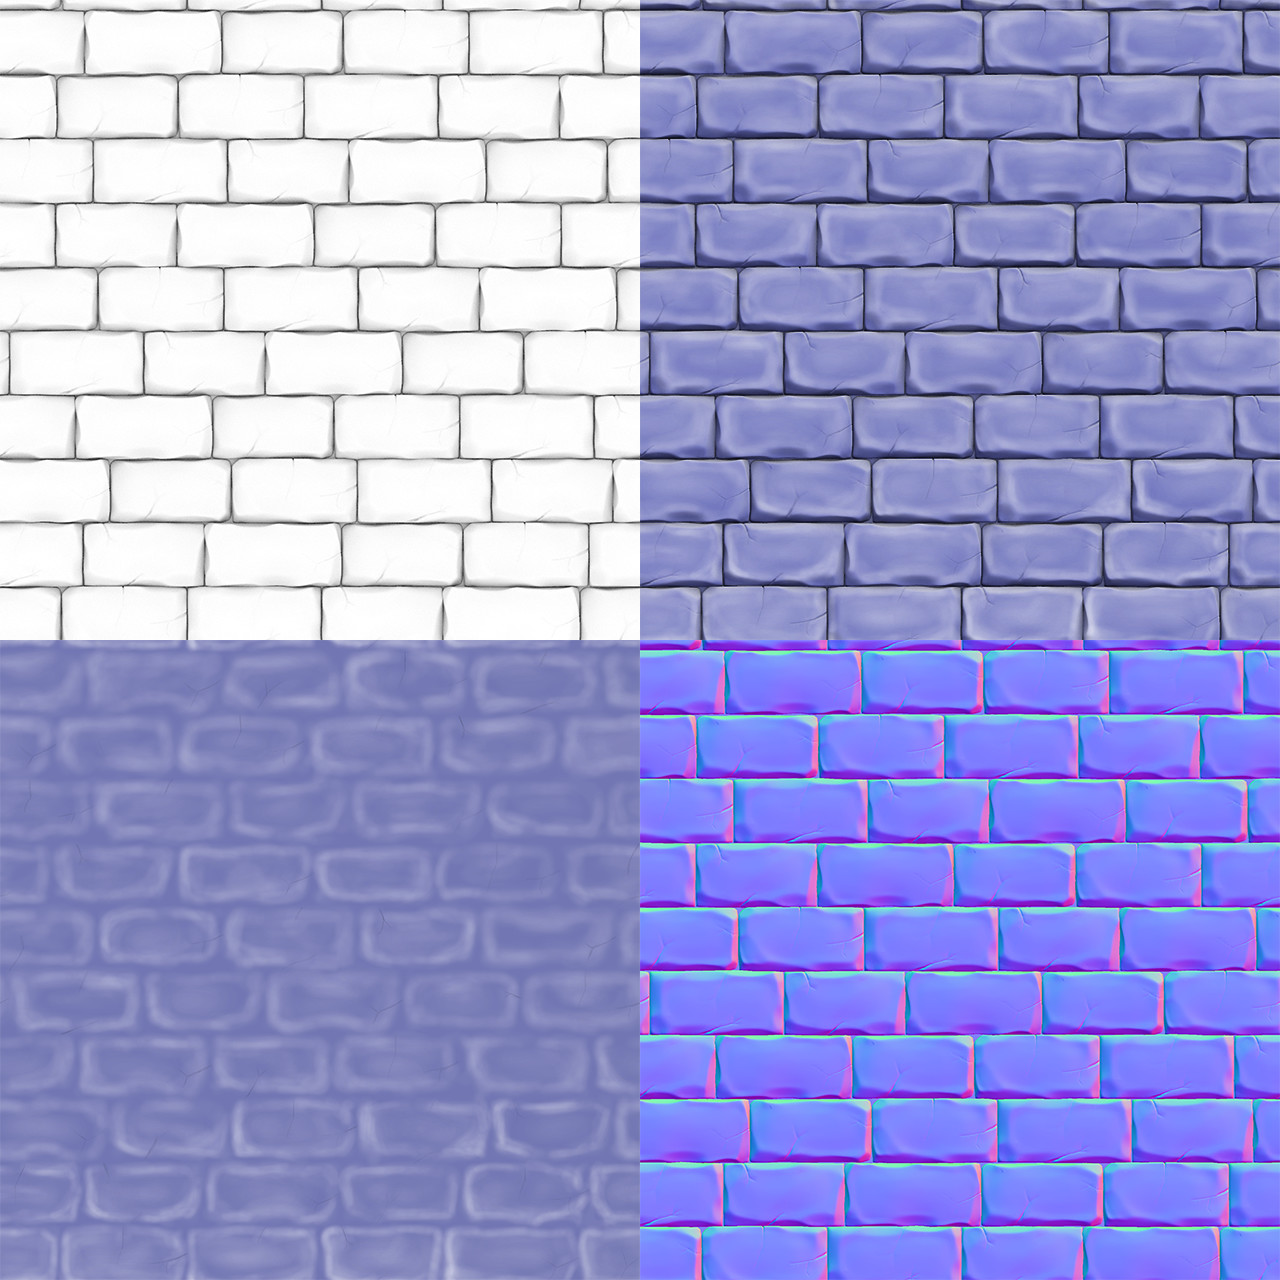 three textures: ambient occlusion, color, normal, and a photoshop mix of all of them